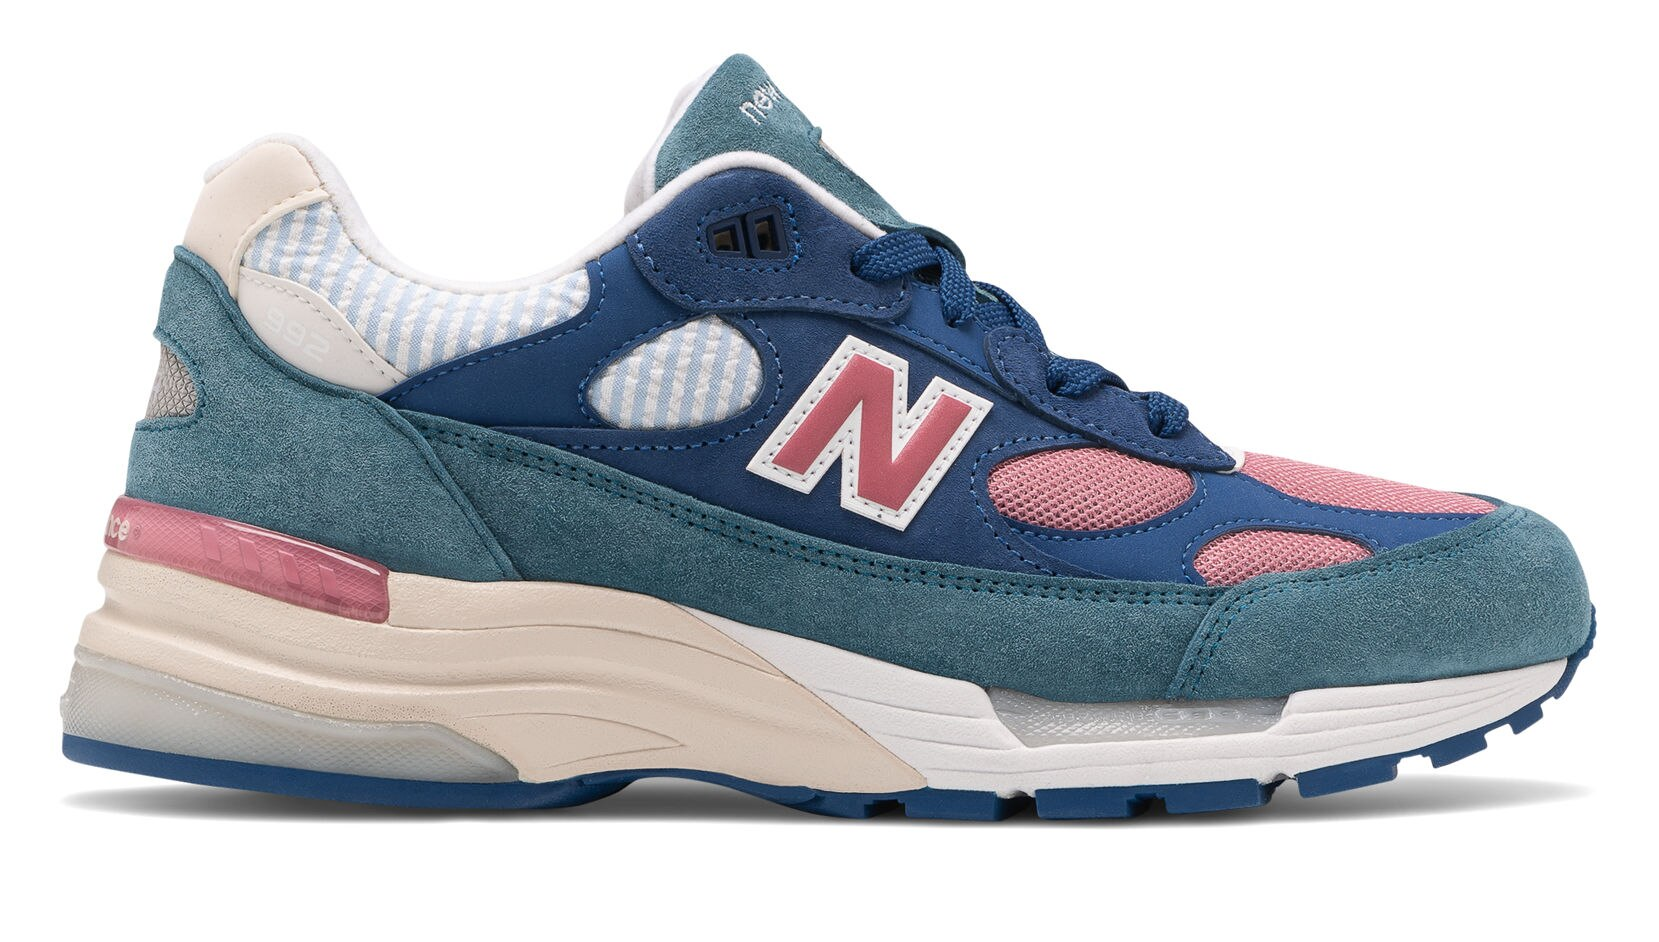 New Balance 992 Made in US Boats & Beaches